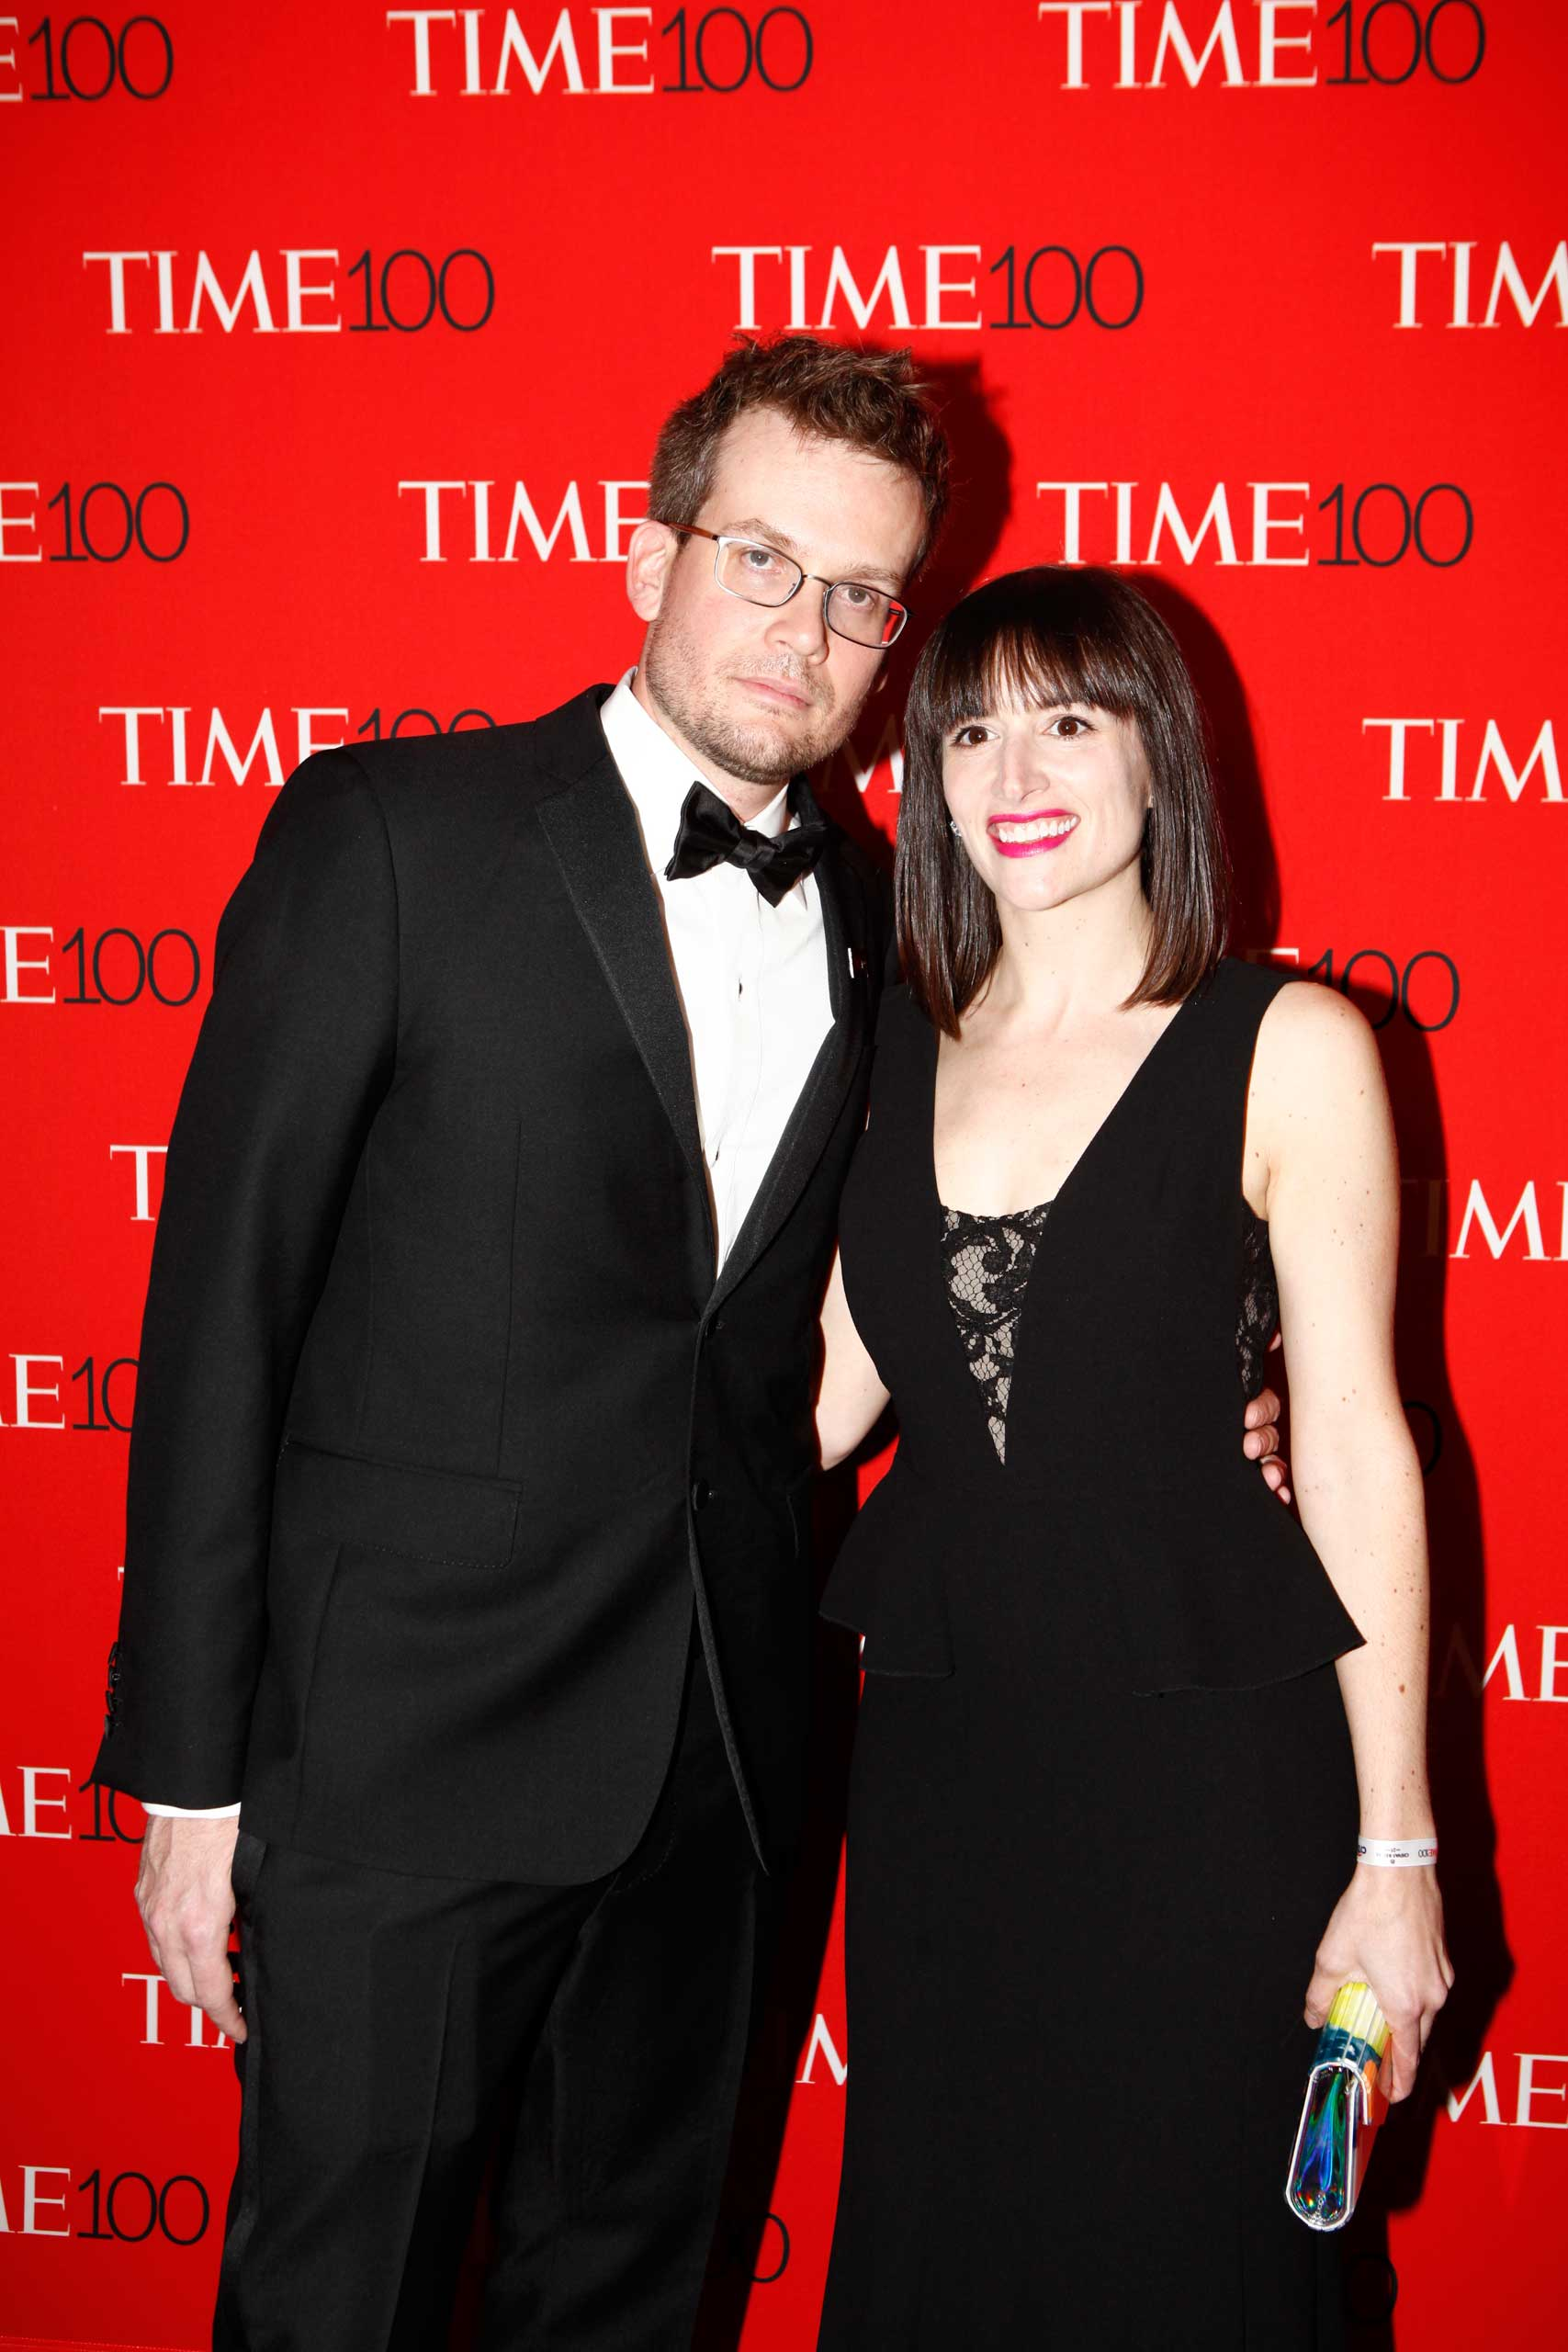 John Green and Sarah Urist Green attend the TIME 100 Gala at Jazz at Lincoln Center in New York City on Apr. 21, 2015.